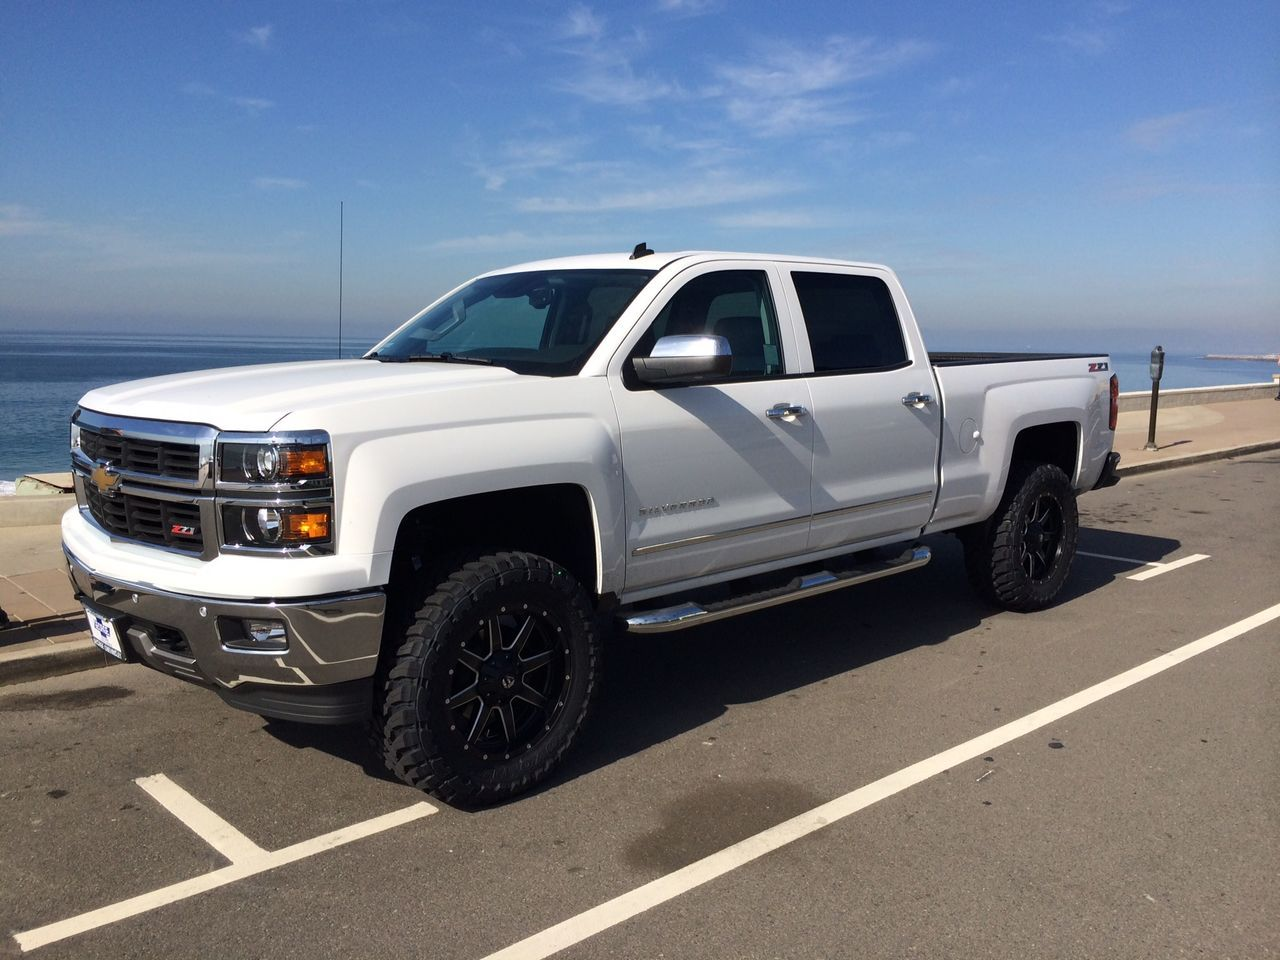 Posted in 2014 2015 2016 silverado sierra accessories modifications looks real good i love the ride of my bds lift